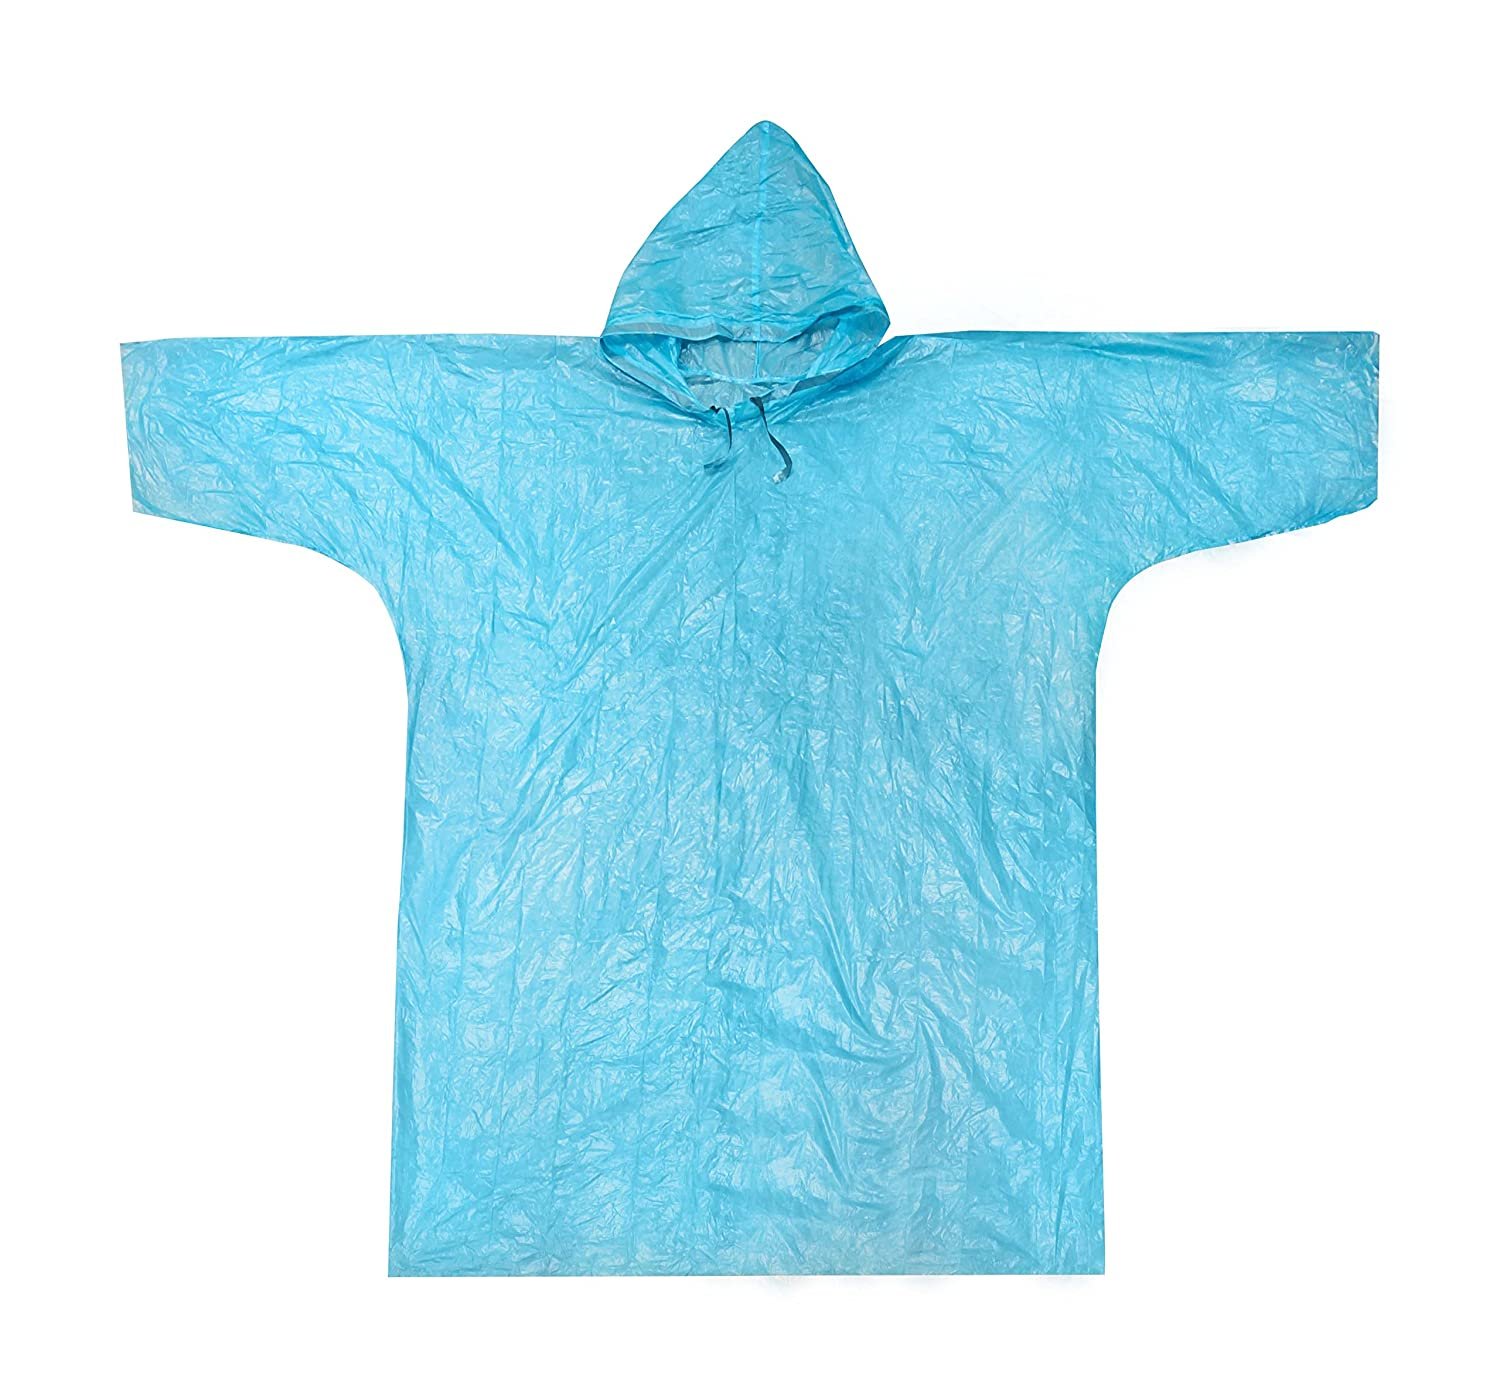 SE EP11A-or Emergency Poncho (Orange) One Size Fits Most Size: 61-Inch X 65-Inch